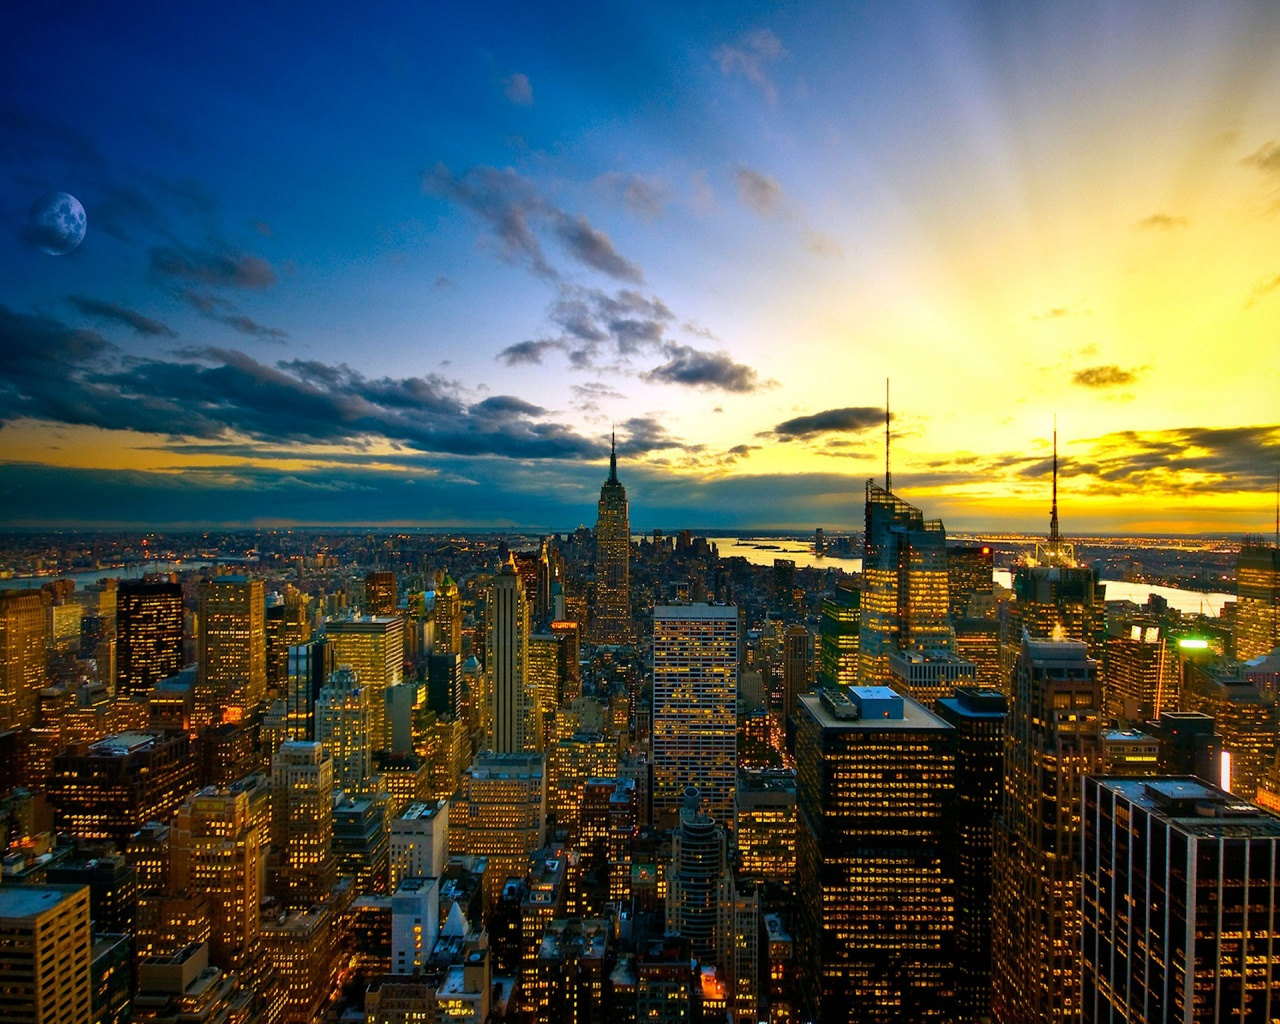 HD Wallpepars New York City United States Wallpapers 1280x1024